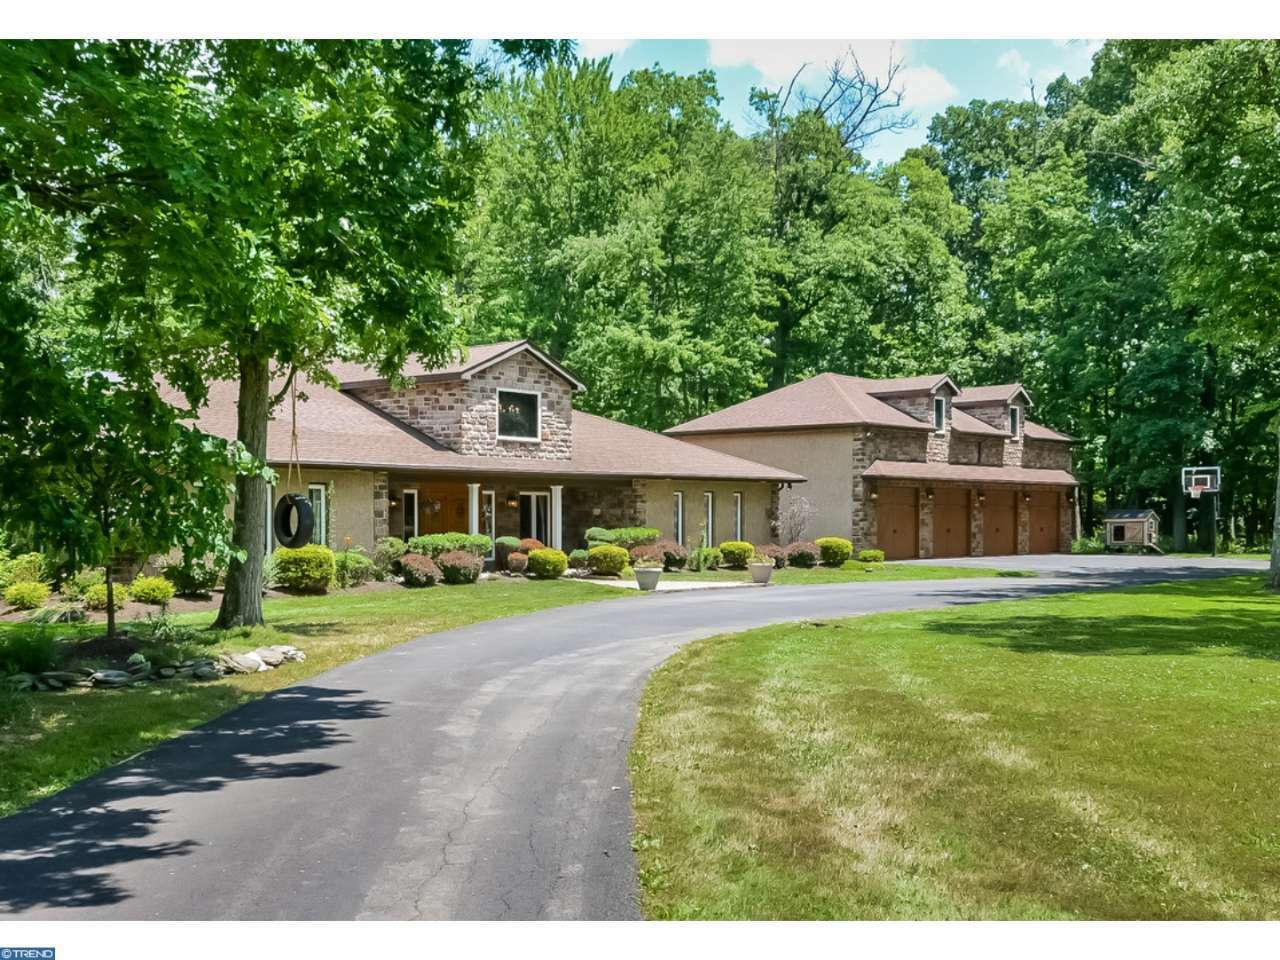 5931 Wismer Rd, Pipersville, PA - USA (photo 1)